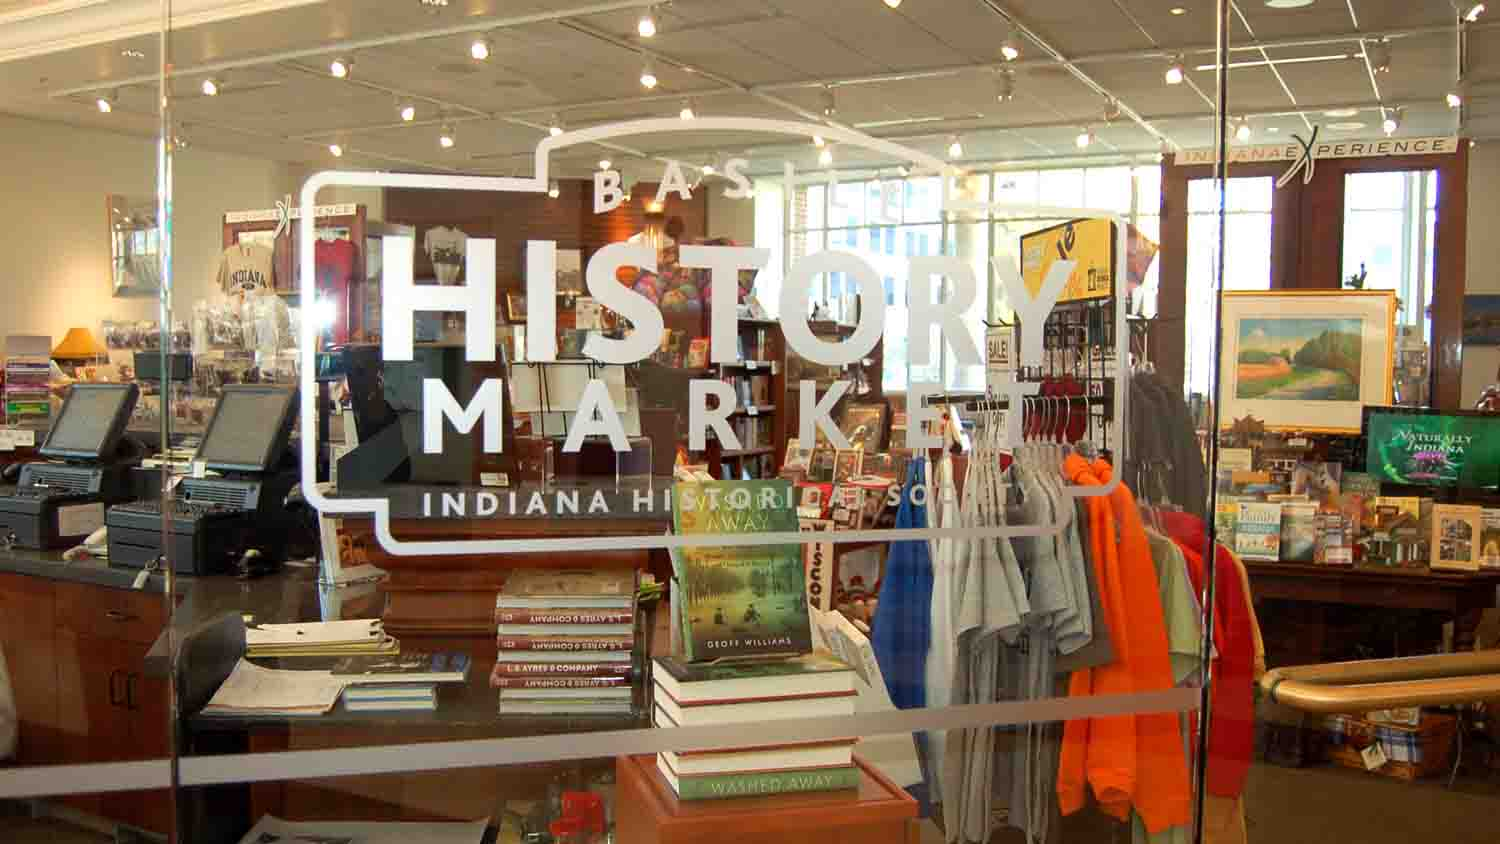 Basile History Market at the Eugene and Marilyn Glick Indiana History Center 2